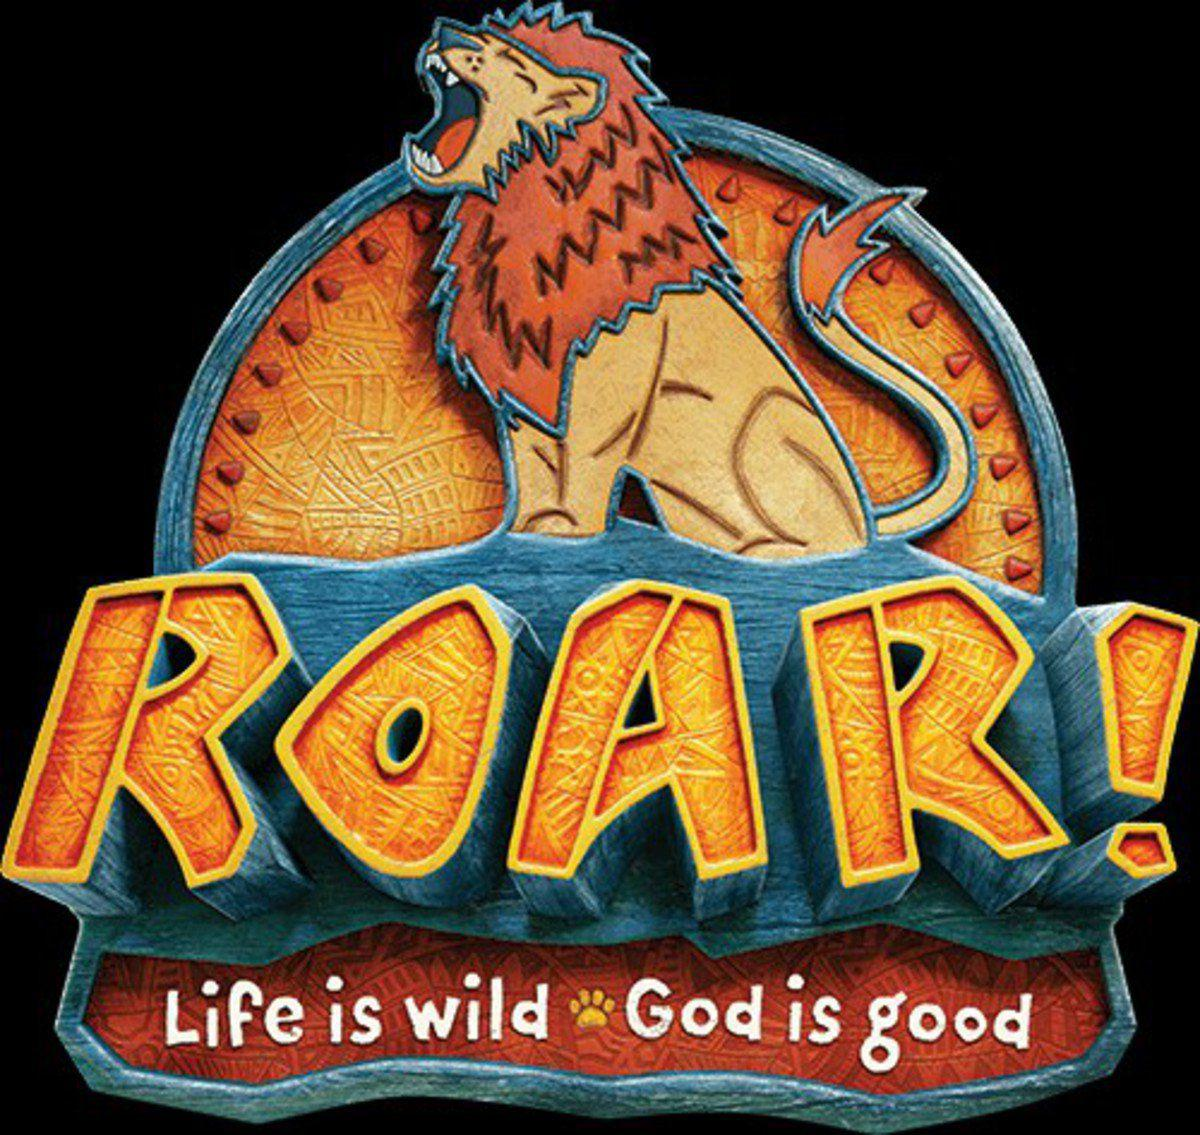 Churches partner in planning vacation Bible schools